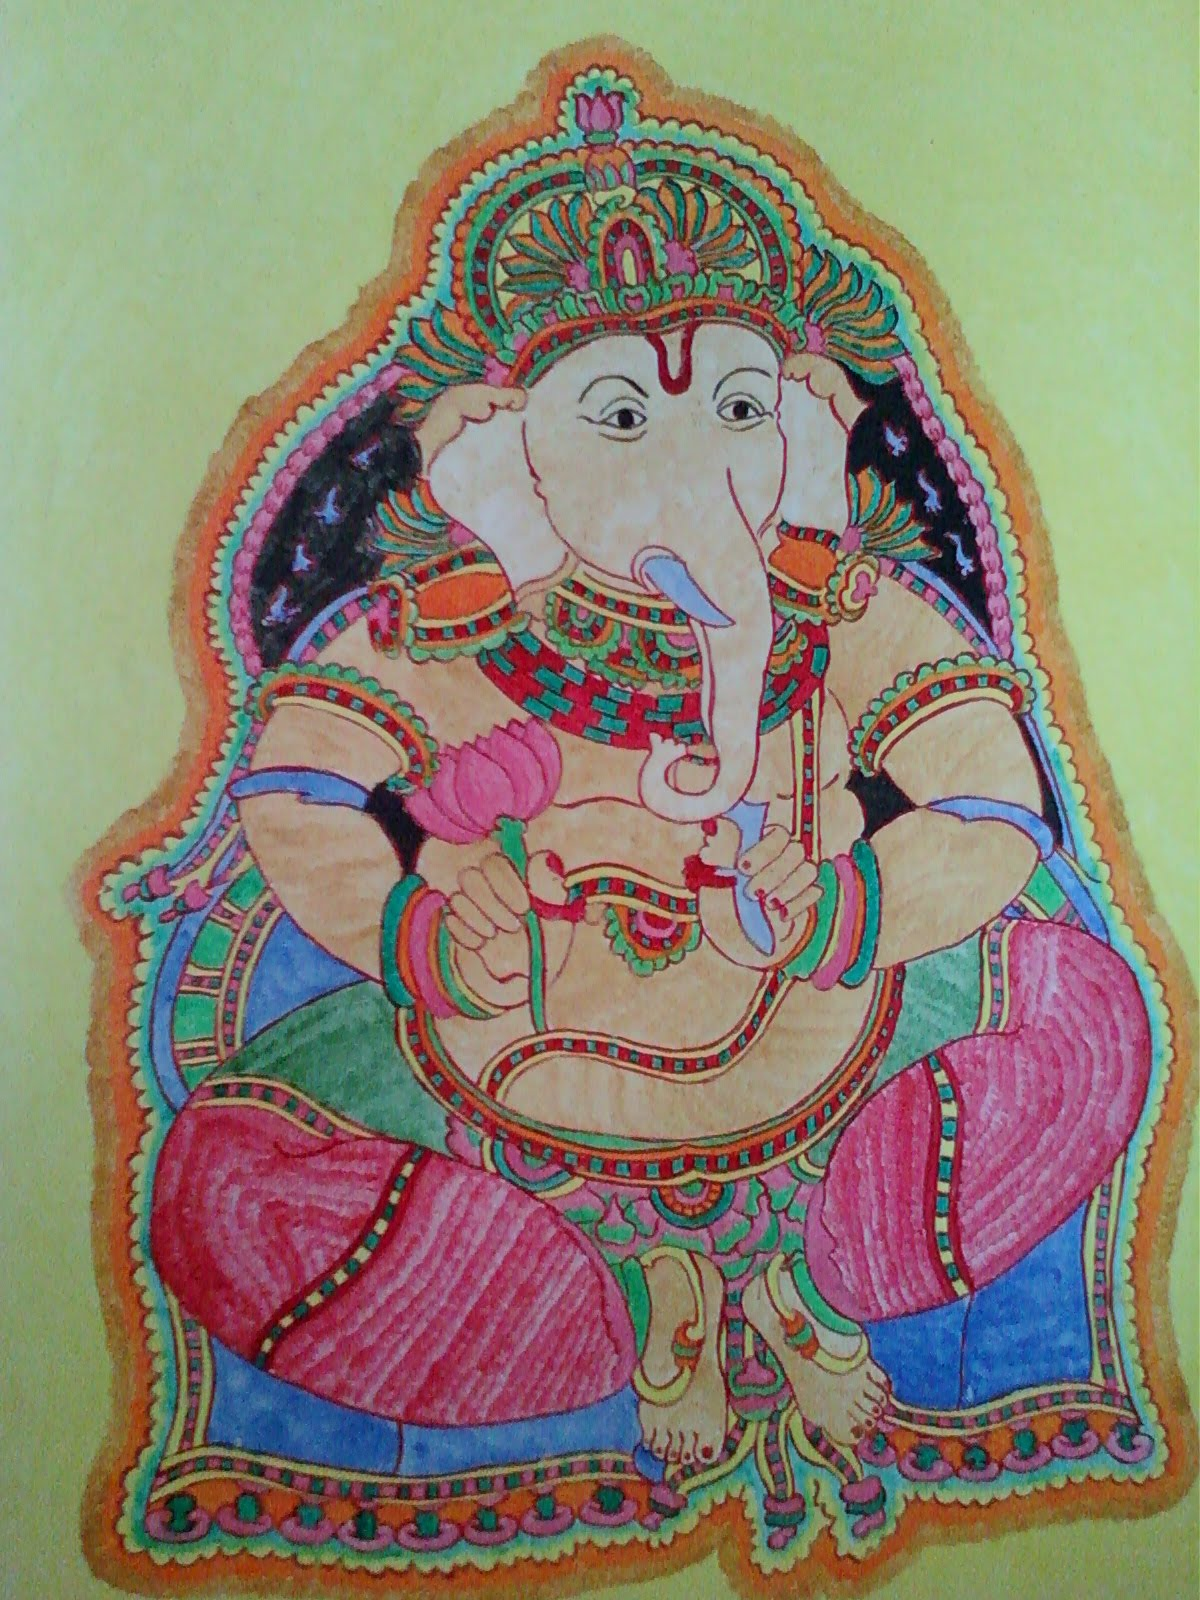 Ganesha on pinterest ganesha ganesh and ganesha for Mural art of ganesha